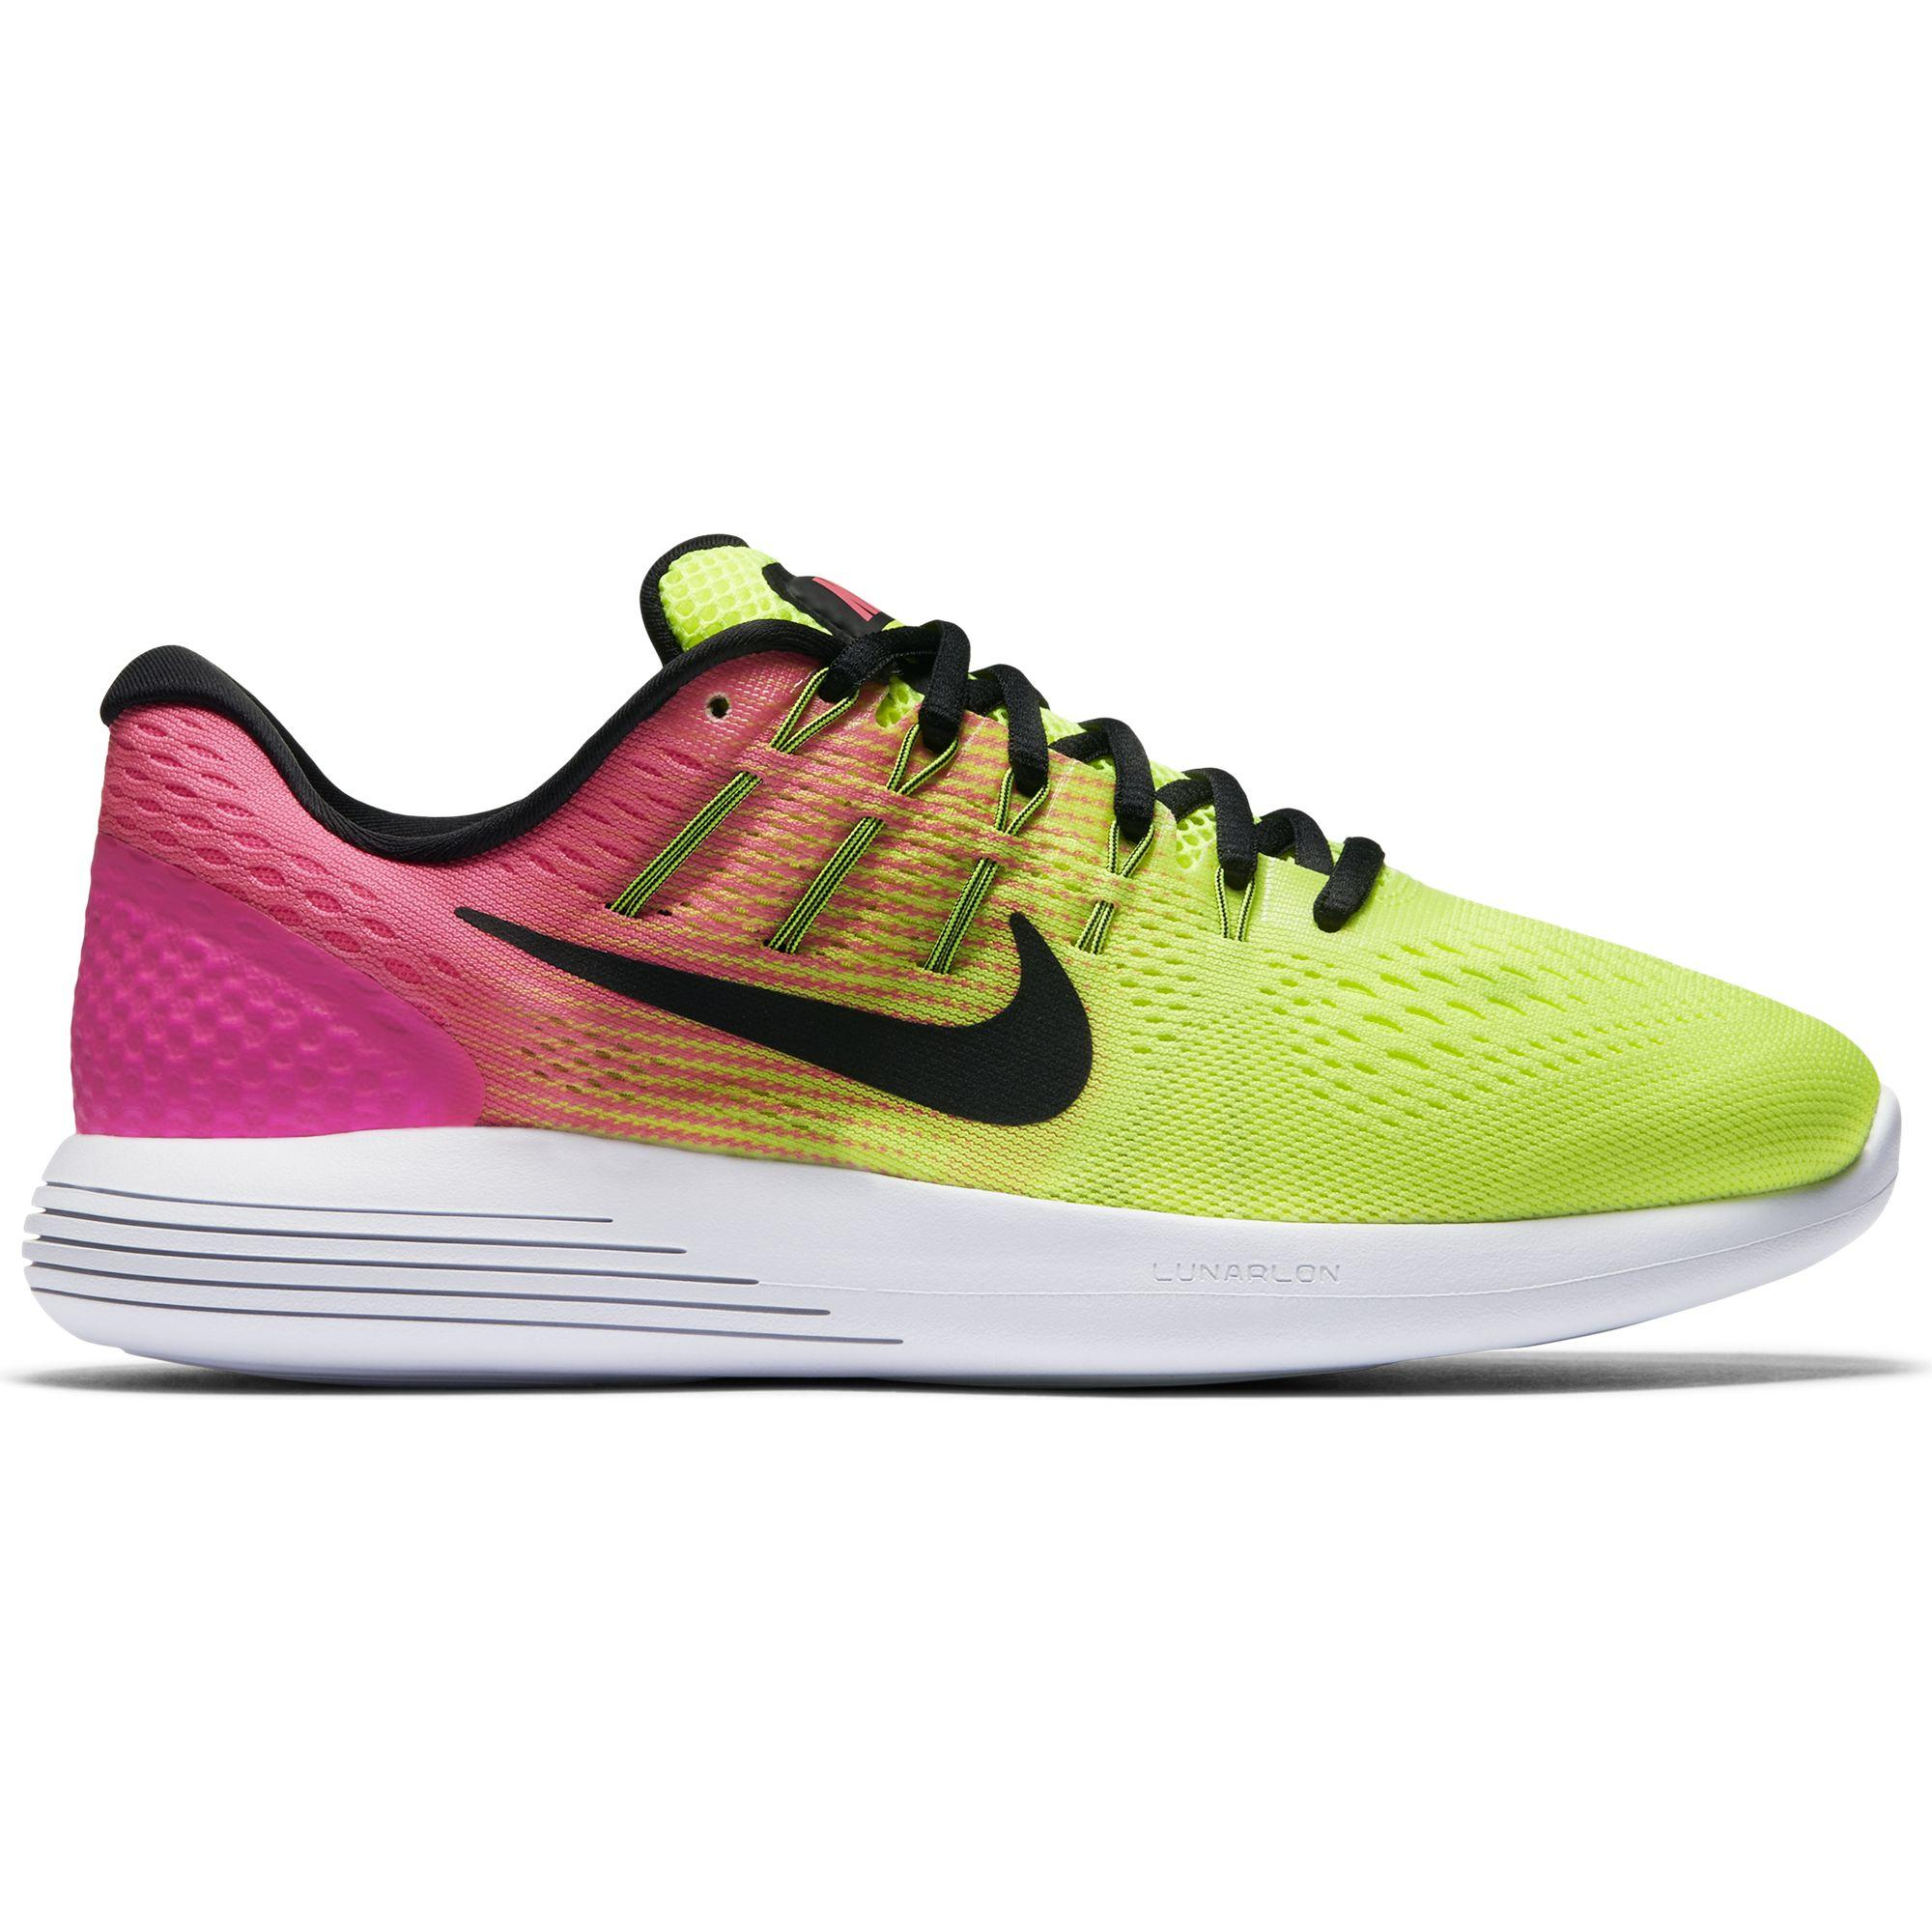 promo code 8cad0 a595b Womens  Nike LunarGlide 8 Shades of Unlimited  Fleet Feet